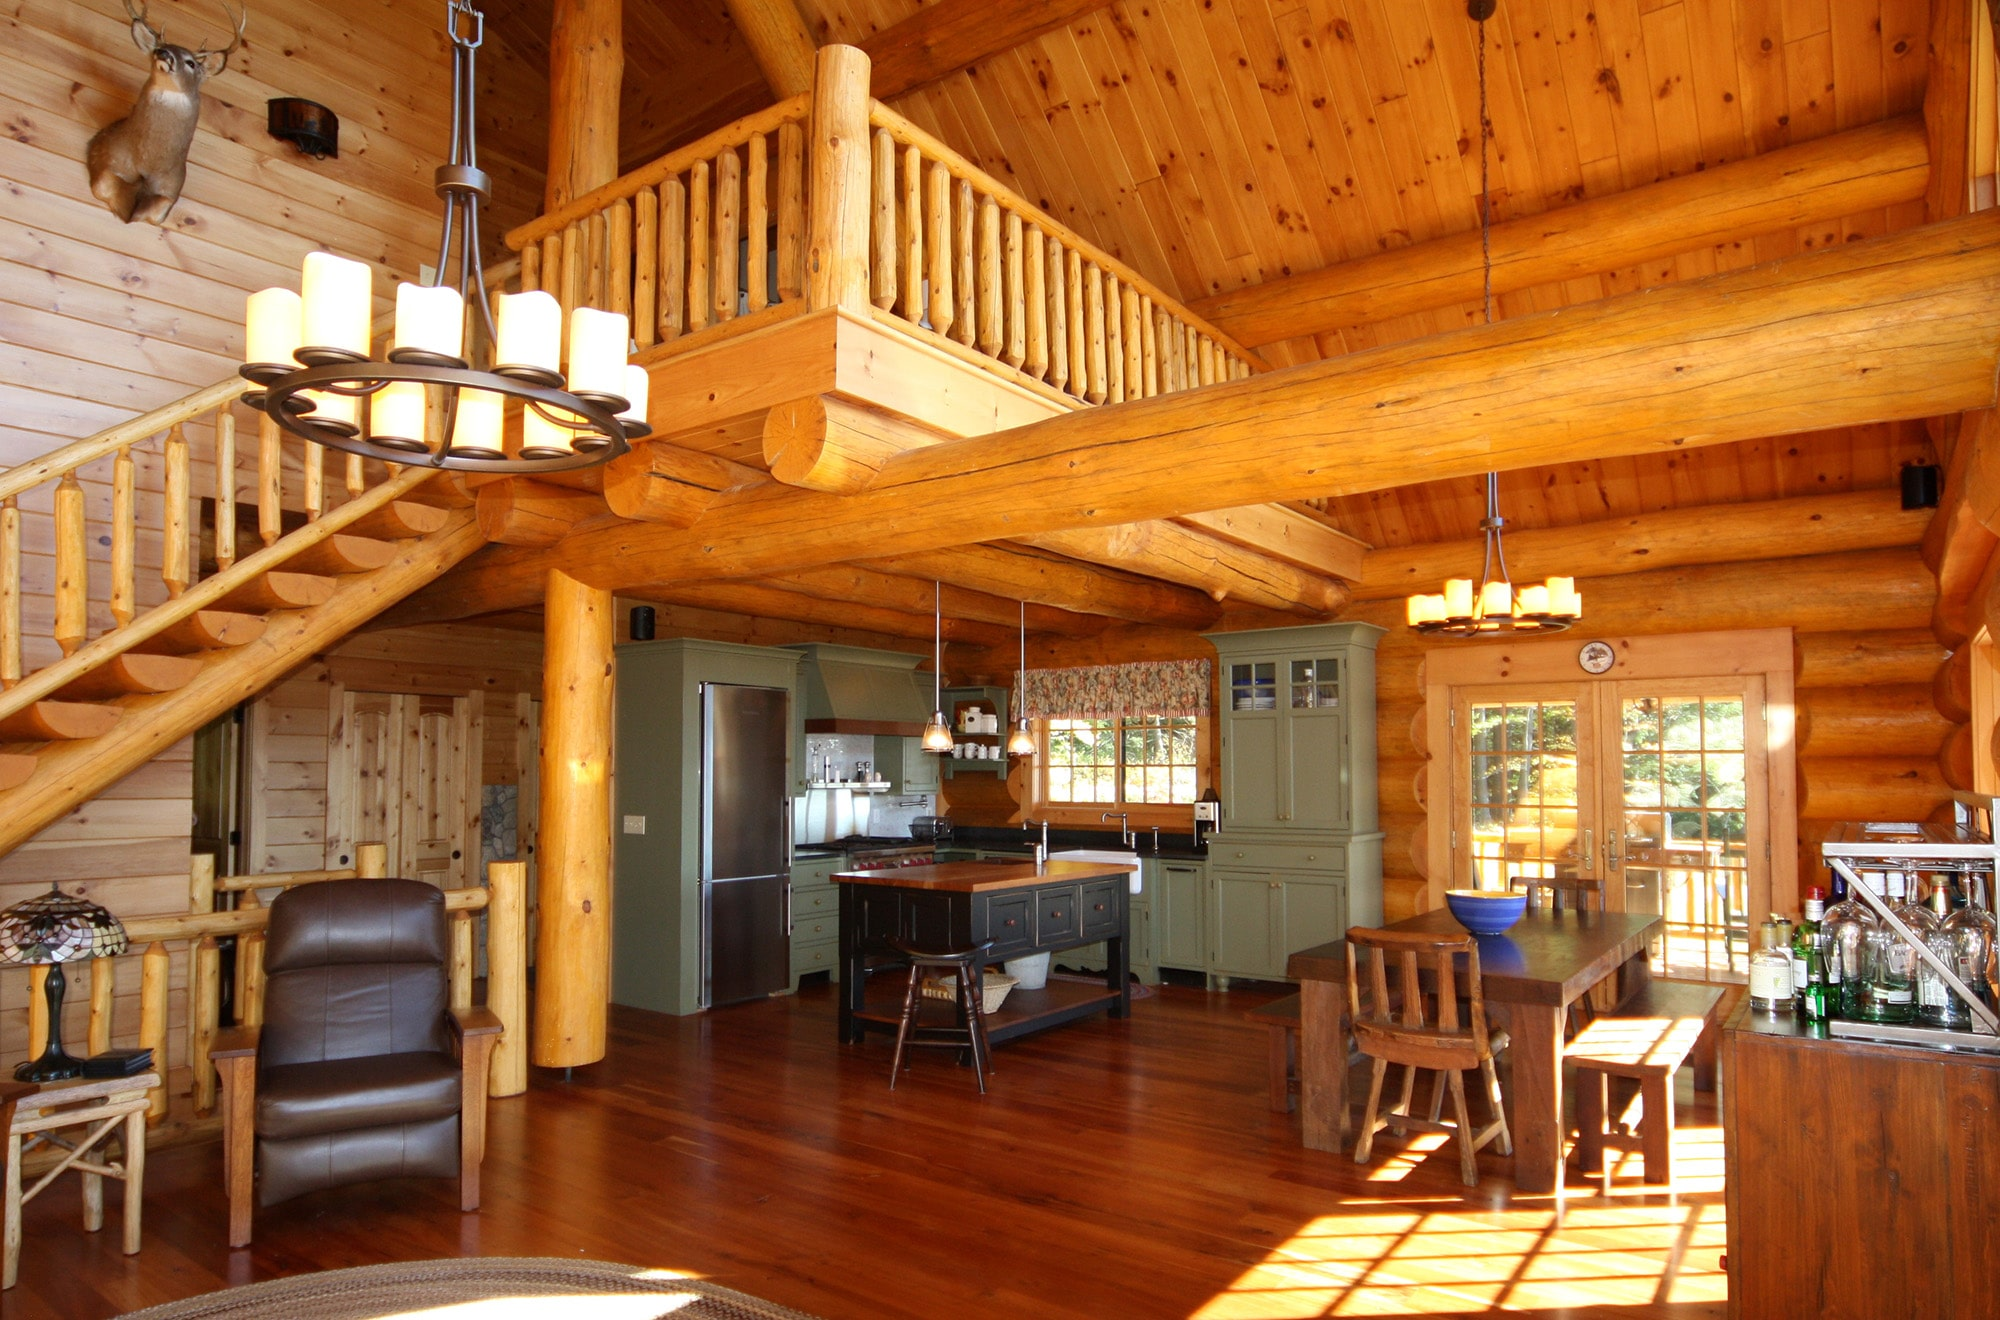 Cozy Log cabin interior kitchen and living room